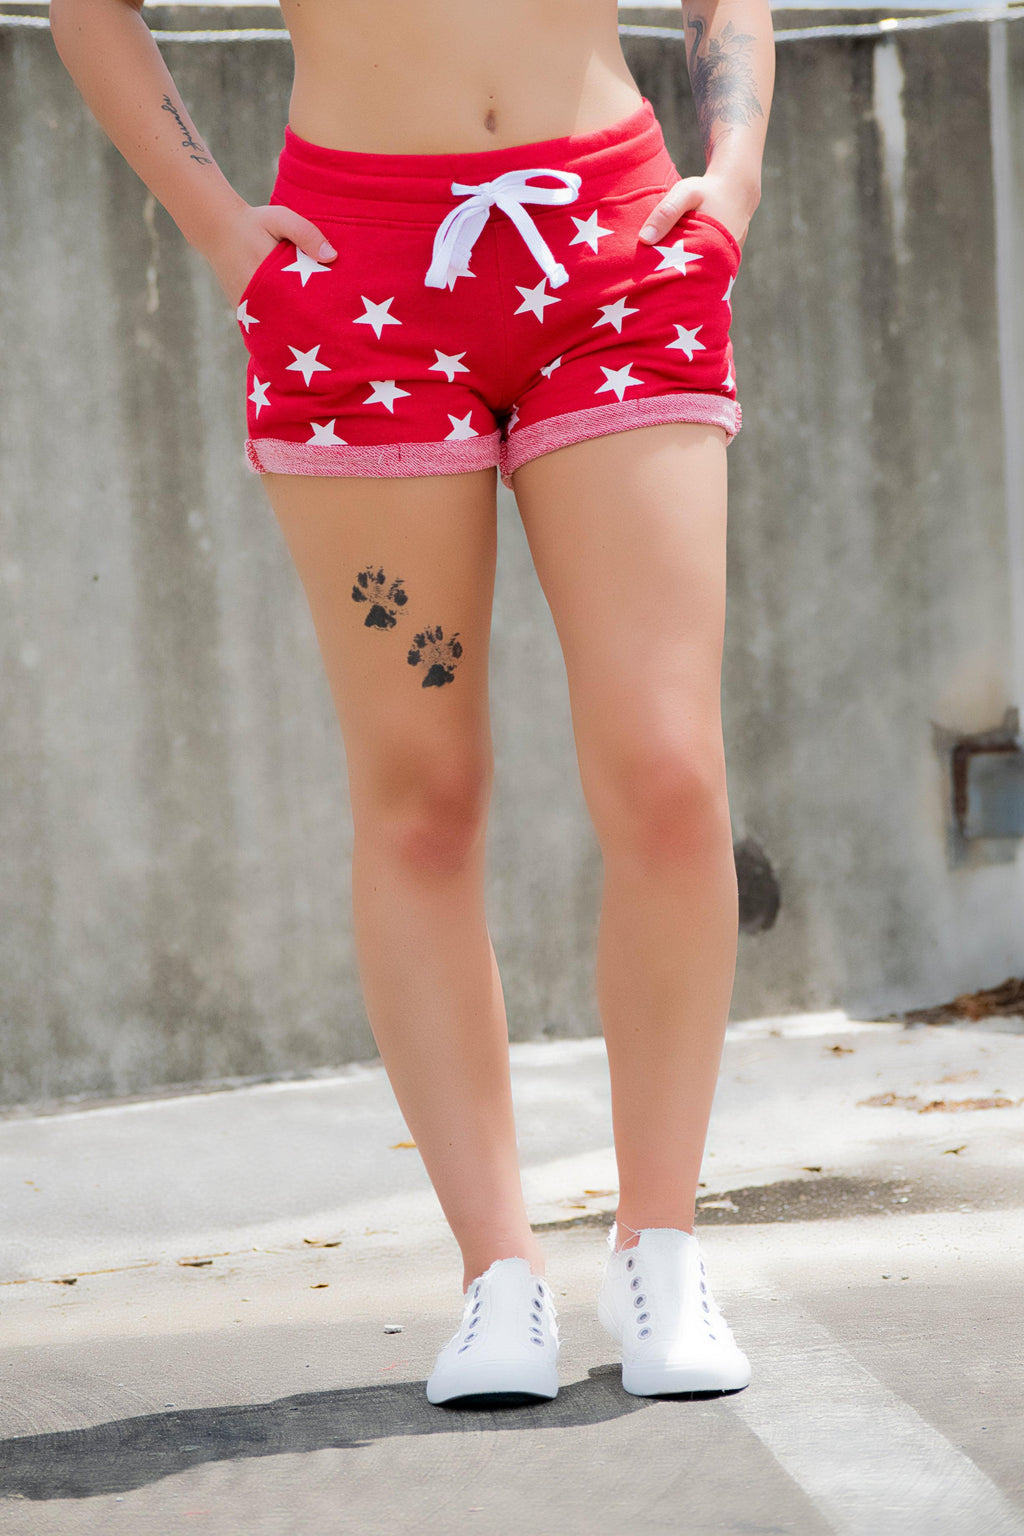 Red Star shorts - 512 Boutique